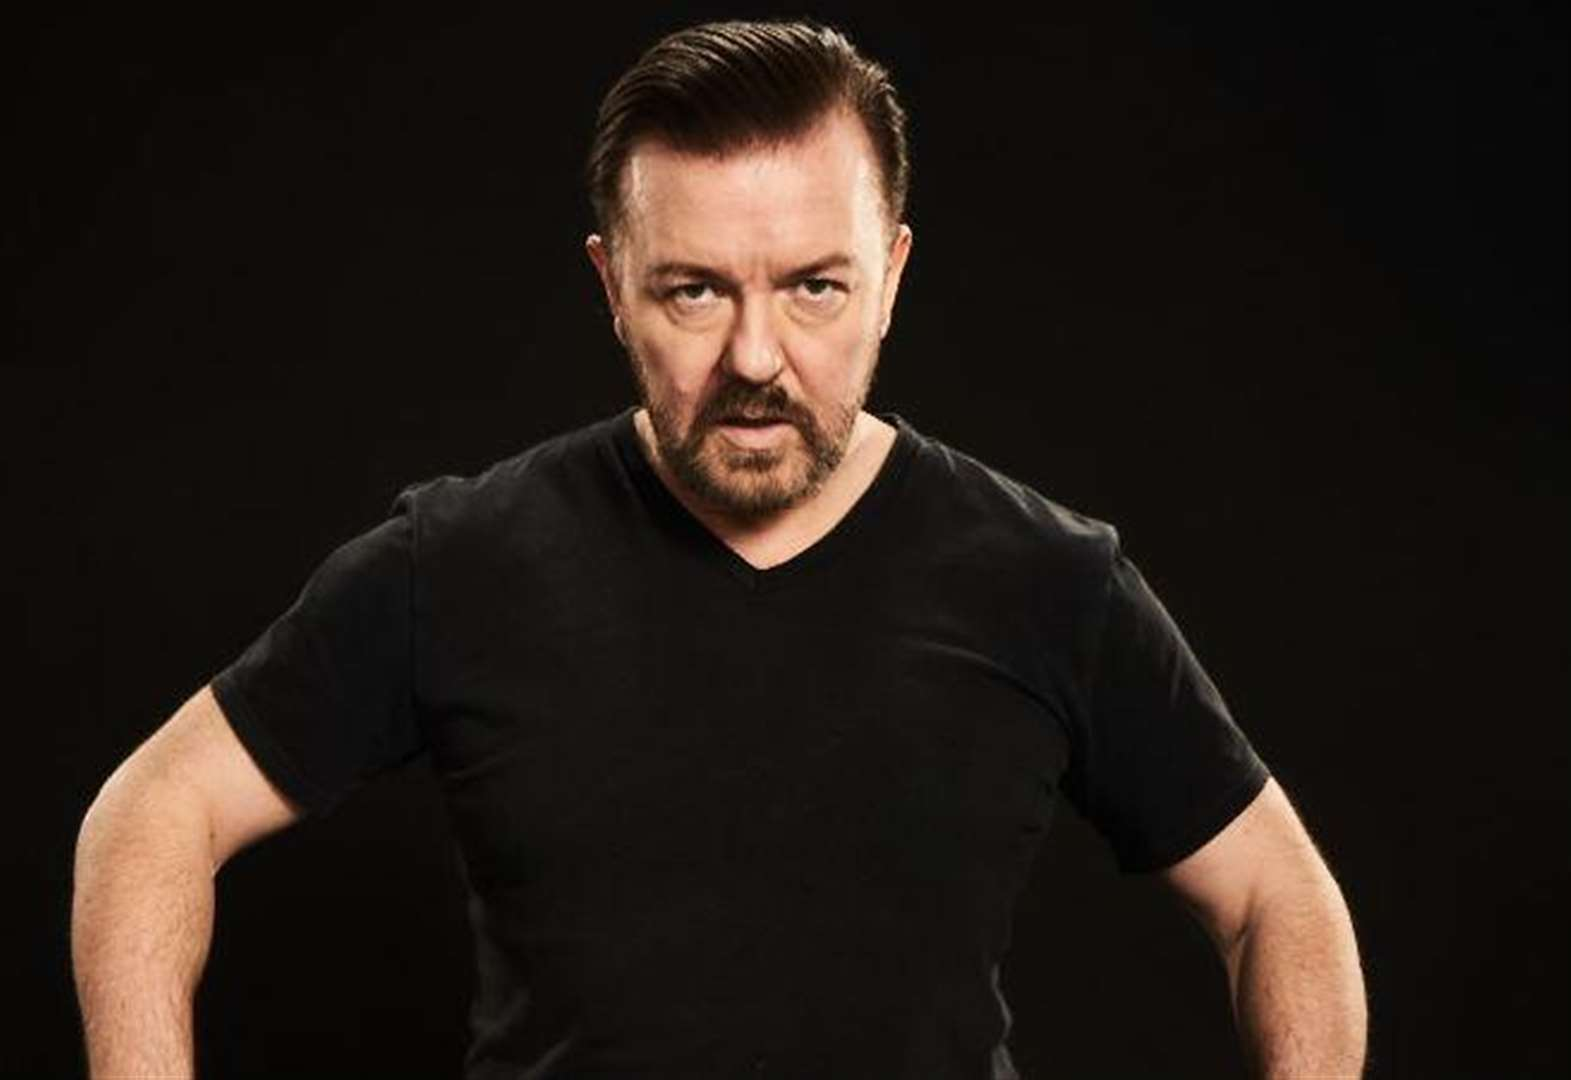 Tickets to see Ricky Gervais to go on sale